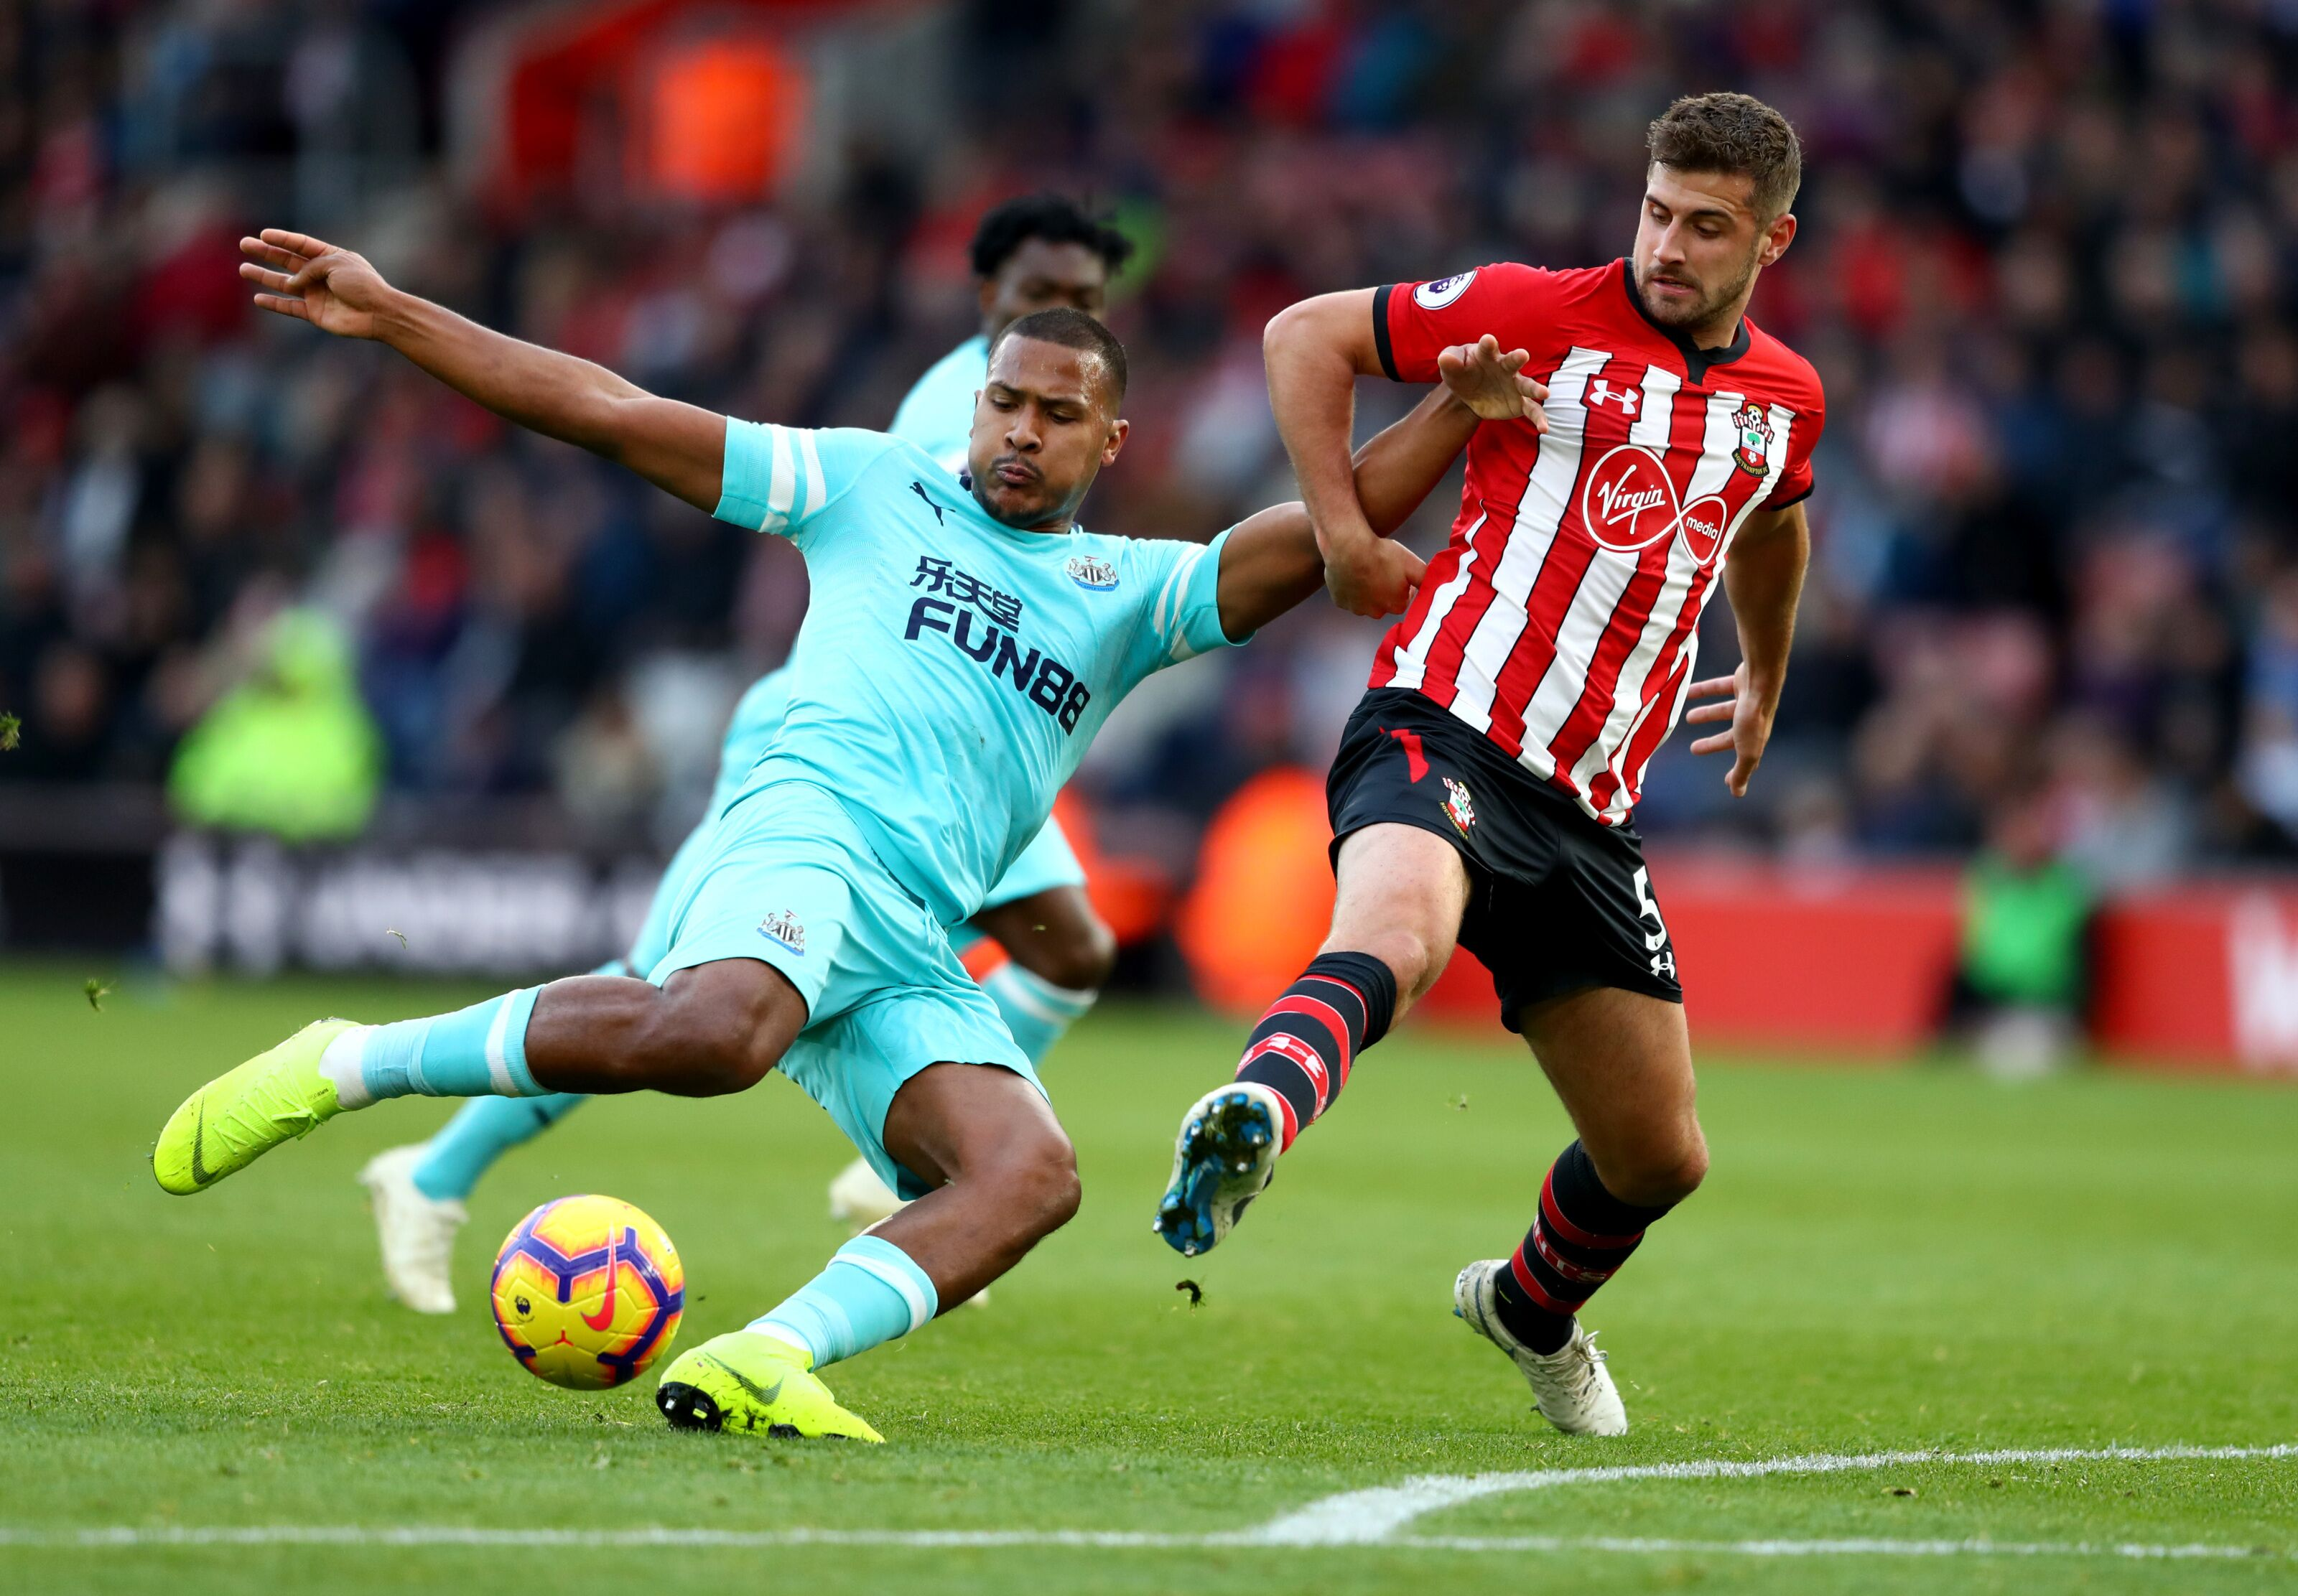 newcastle united 3 things we learned vs southampton